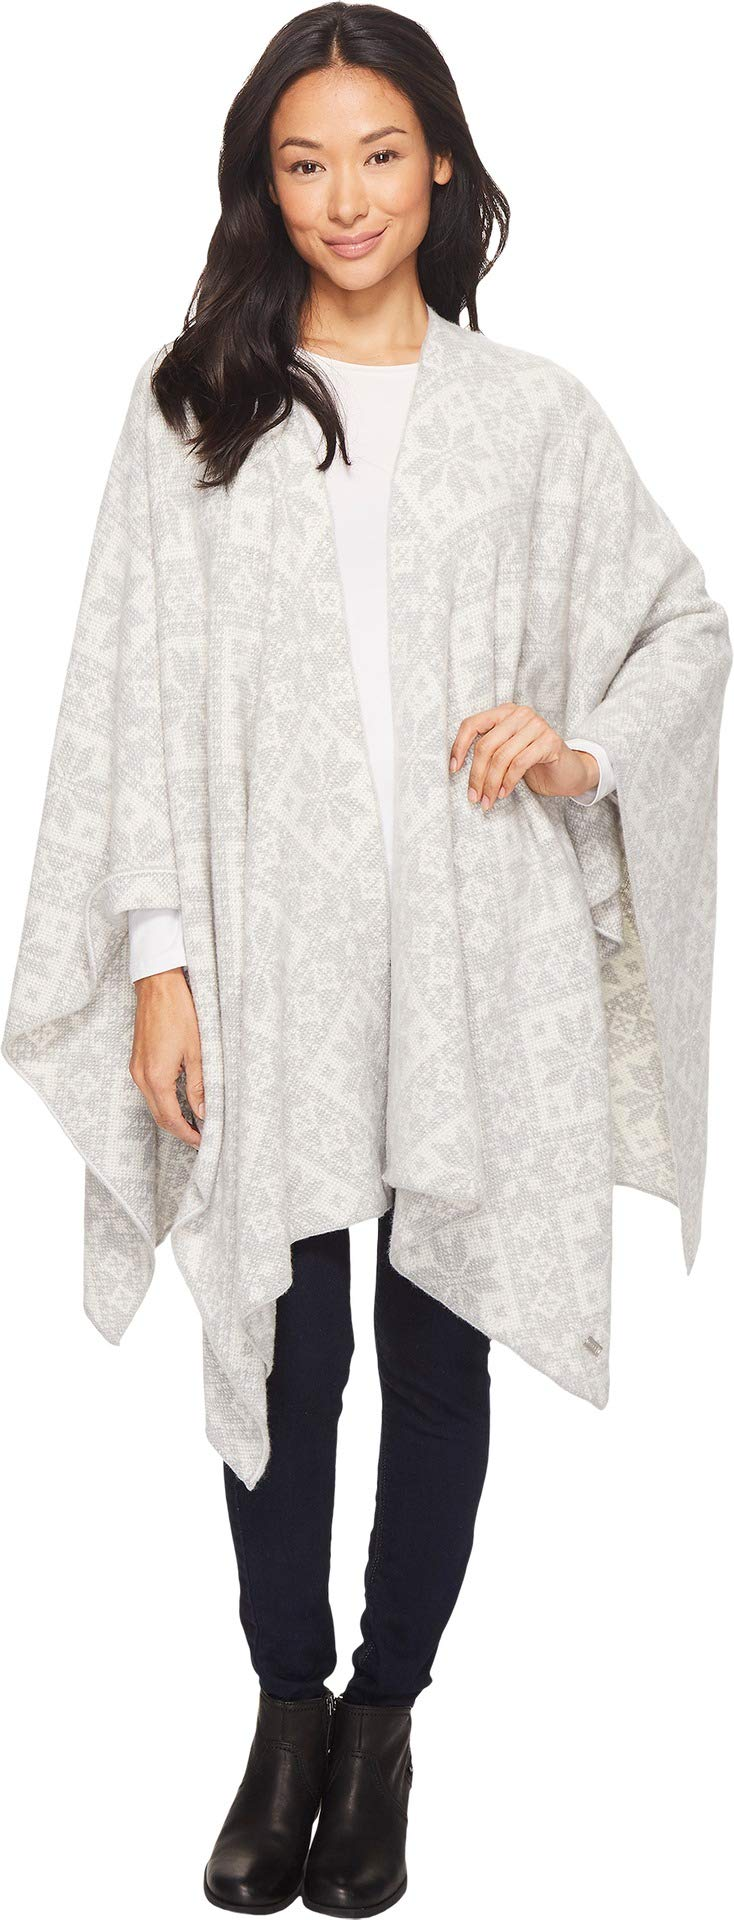 Dale of Norway Rose Shawl, Charcoal/Off-White, One Size